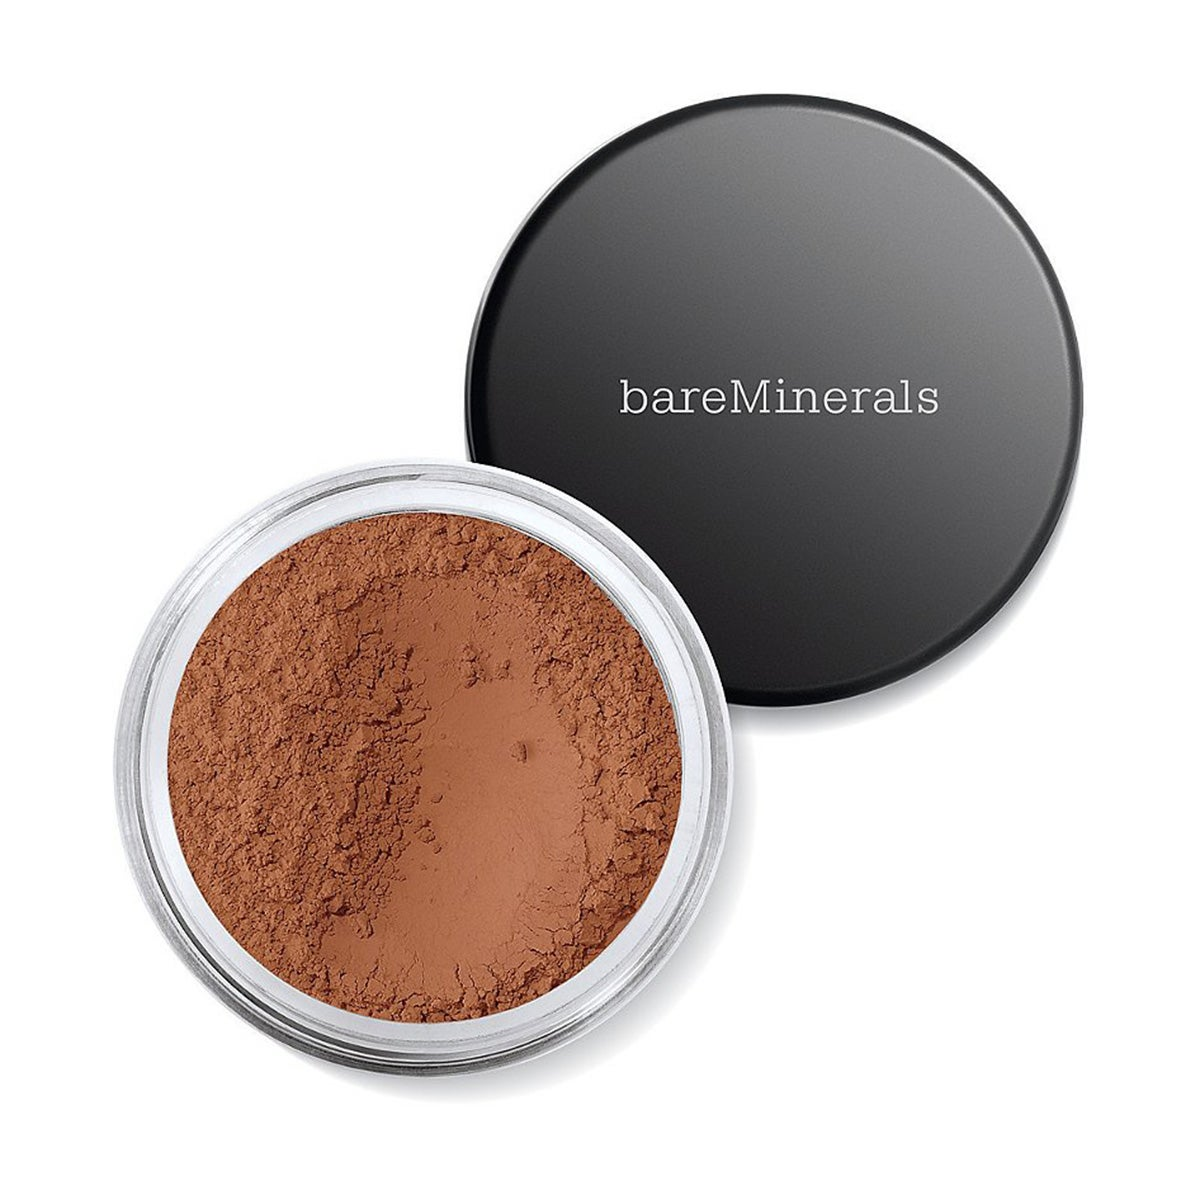 bareMinerals Warmth All Over Face Color Bronzer